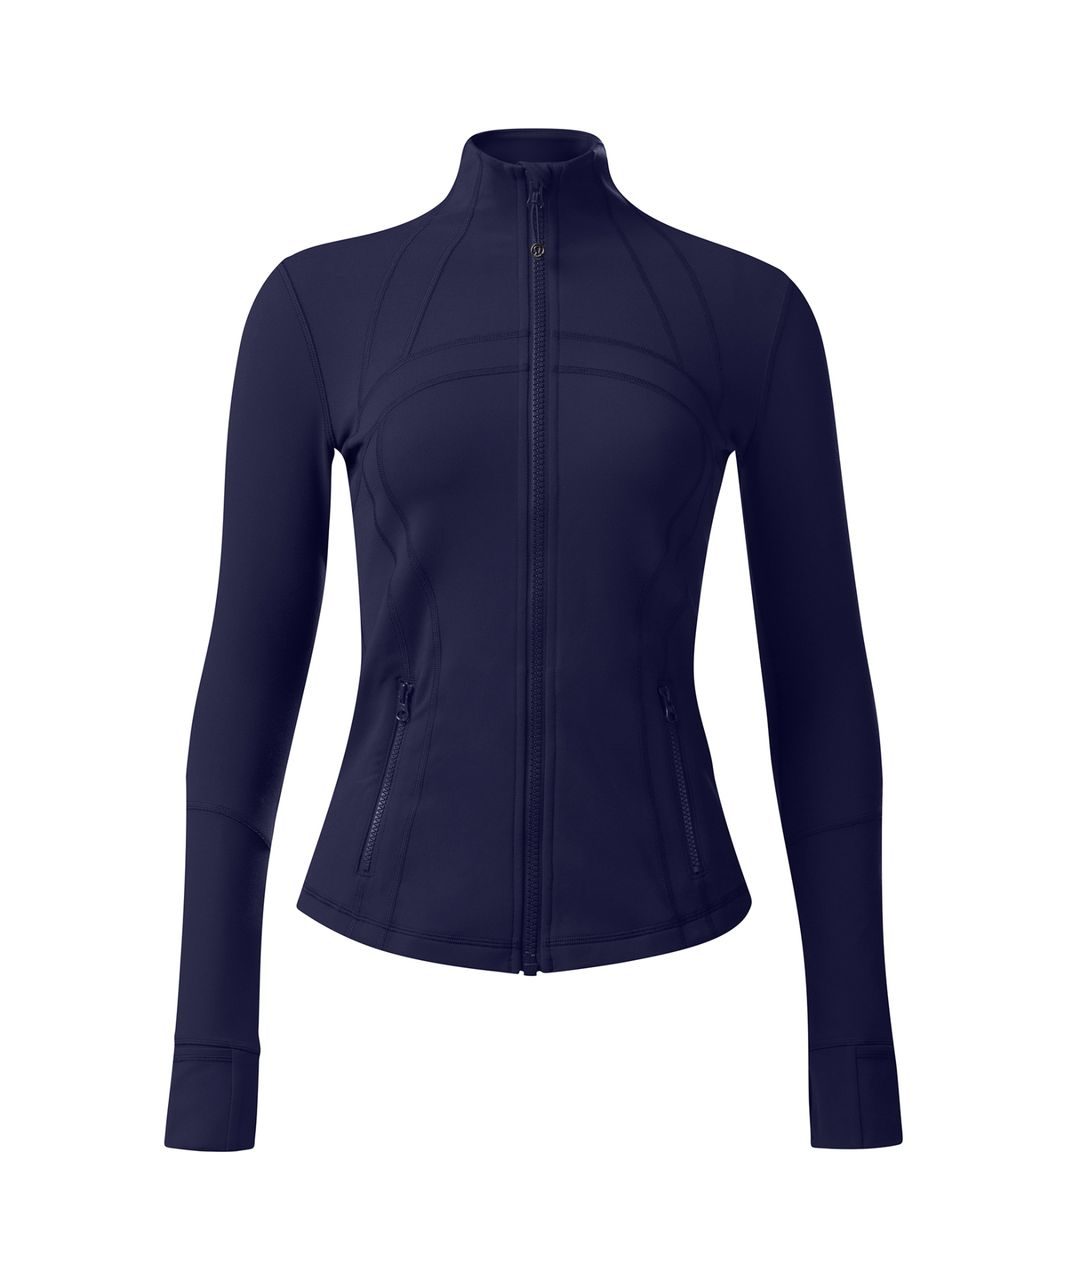 Lululemon Define Jacket - Deep Indigo